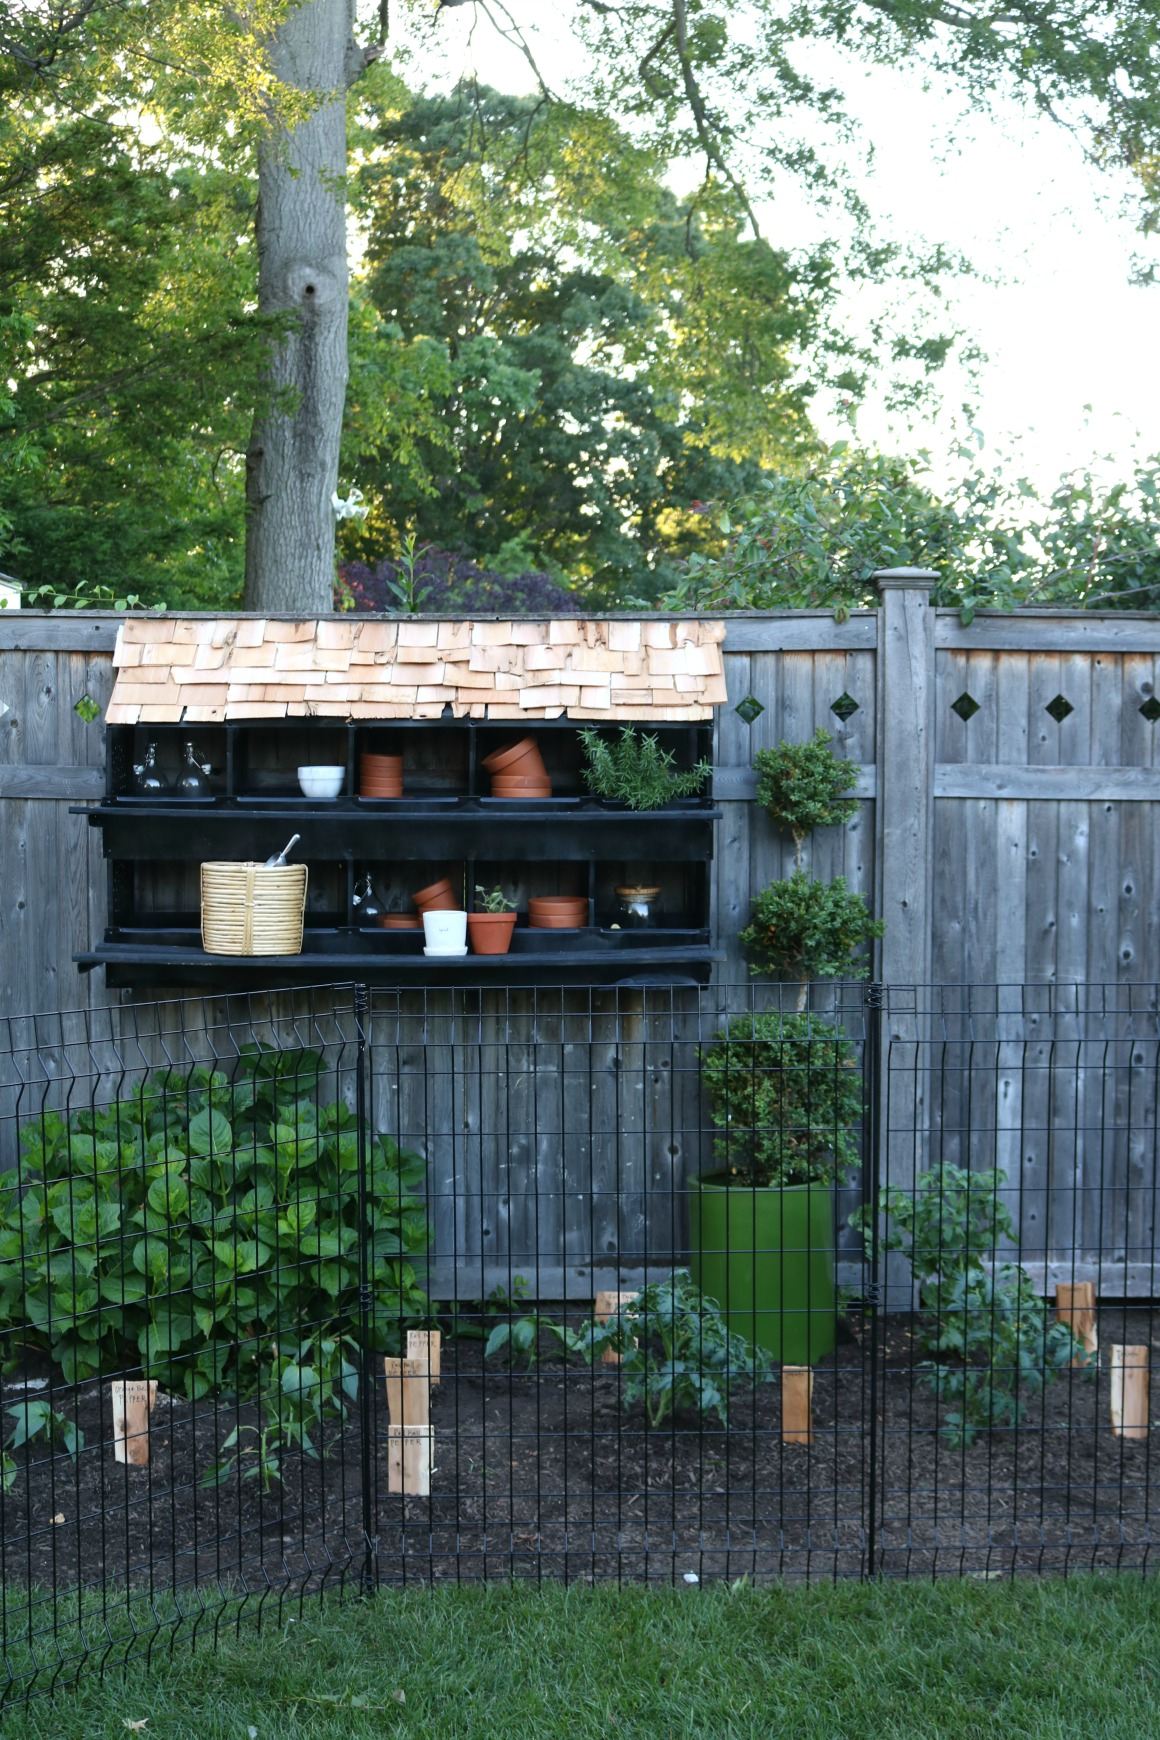 Our new Garden and Nesting Box